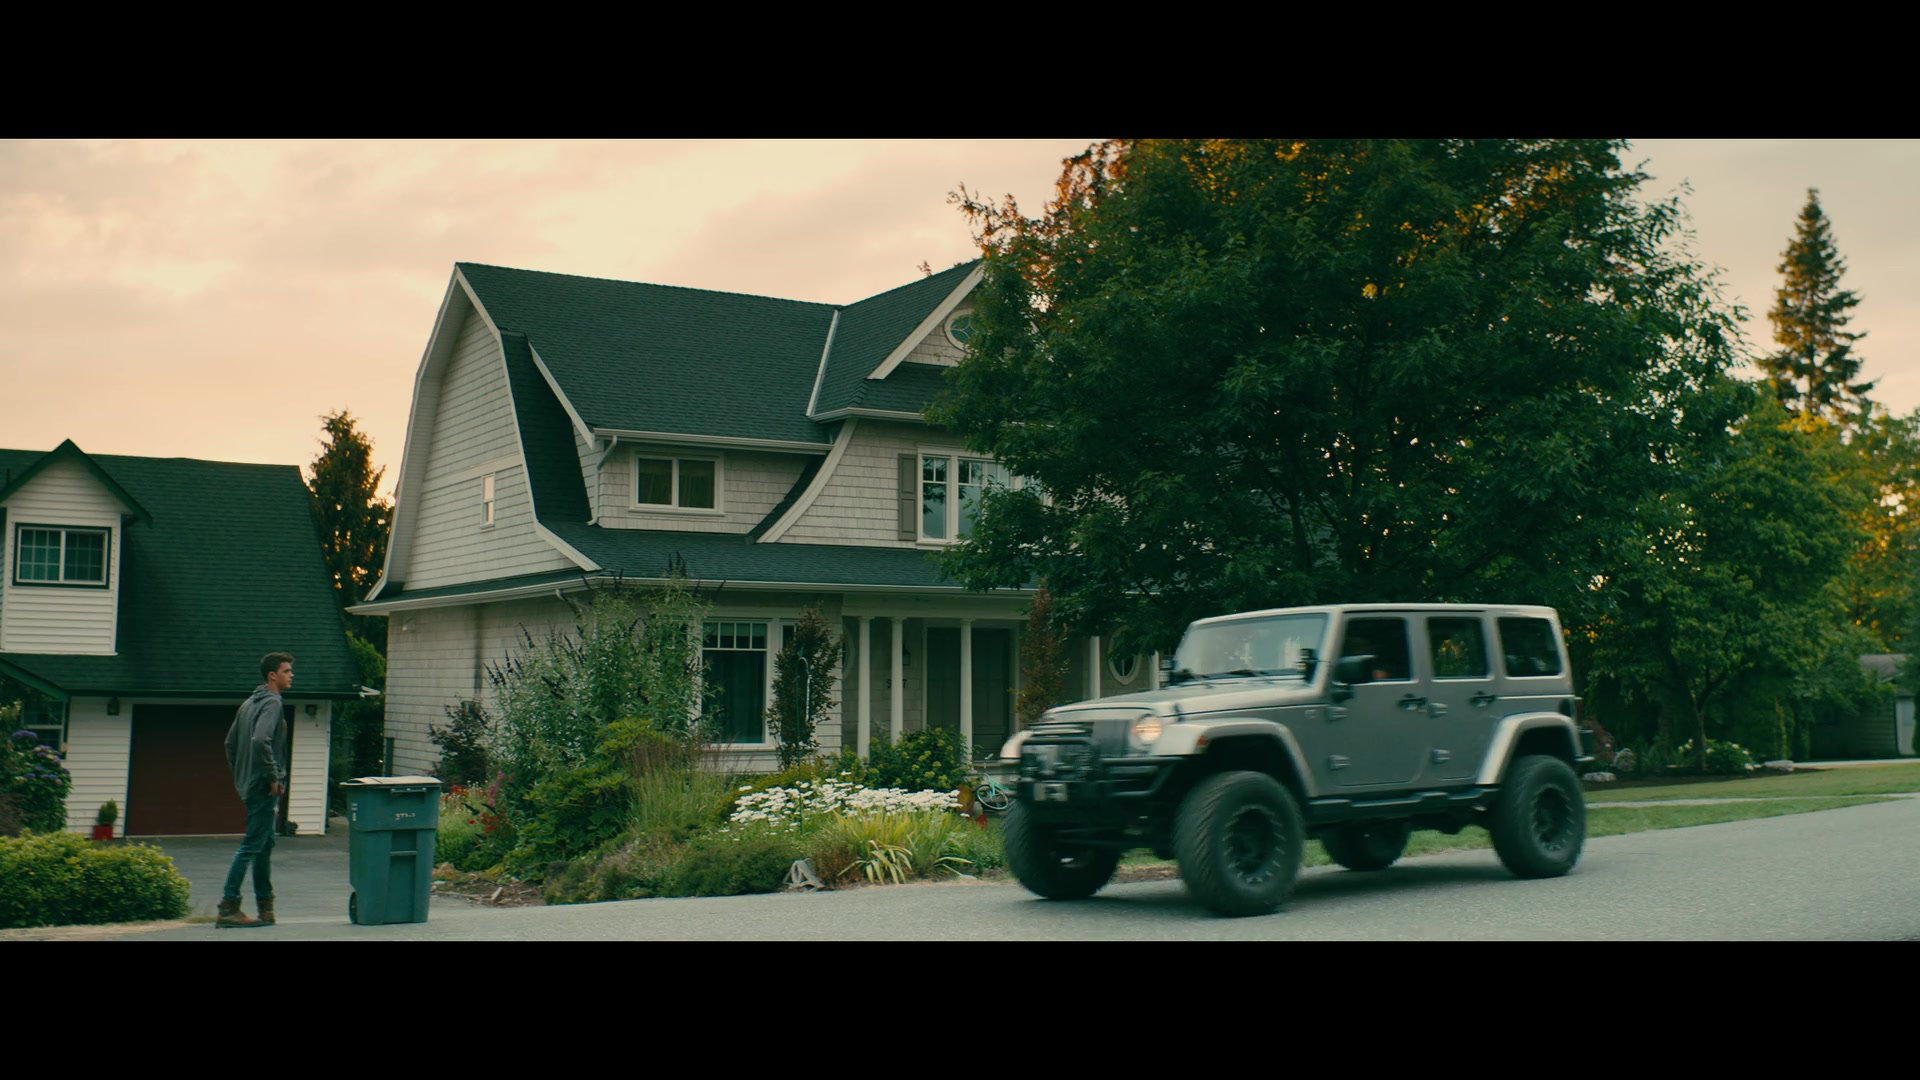 Used Dodge Dart >> Jeep Wrangler Car Used by Noah Centineo in To All the Boys I've Loved Before (2018) Movie